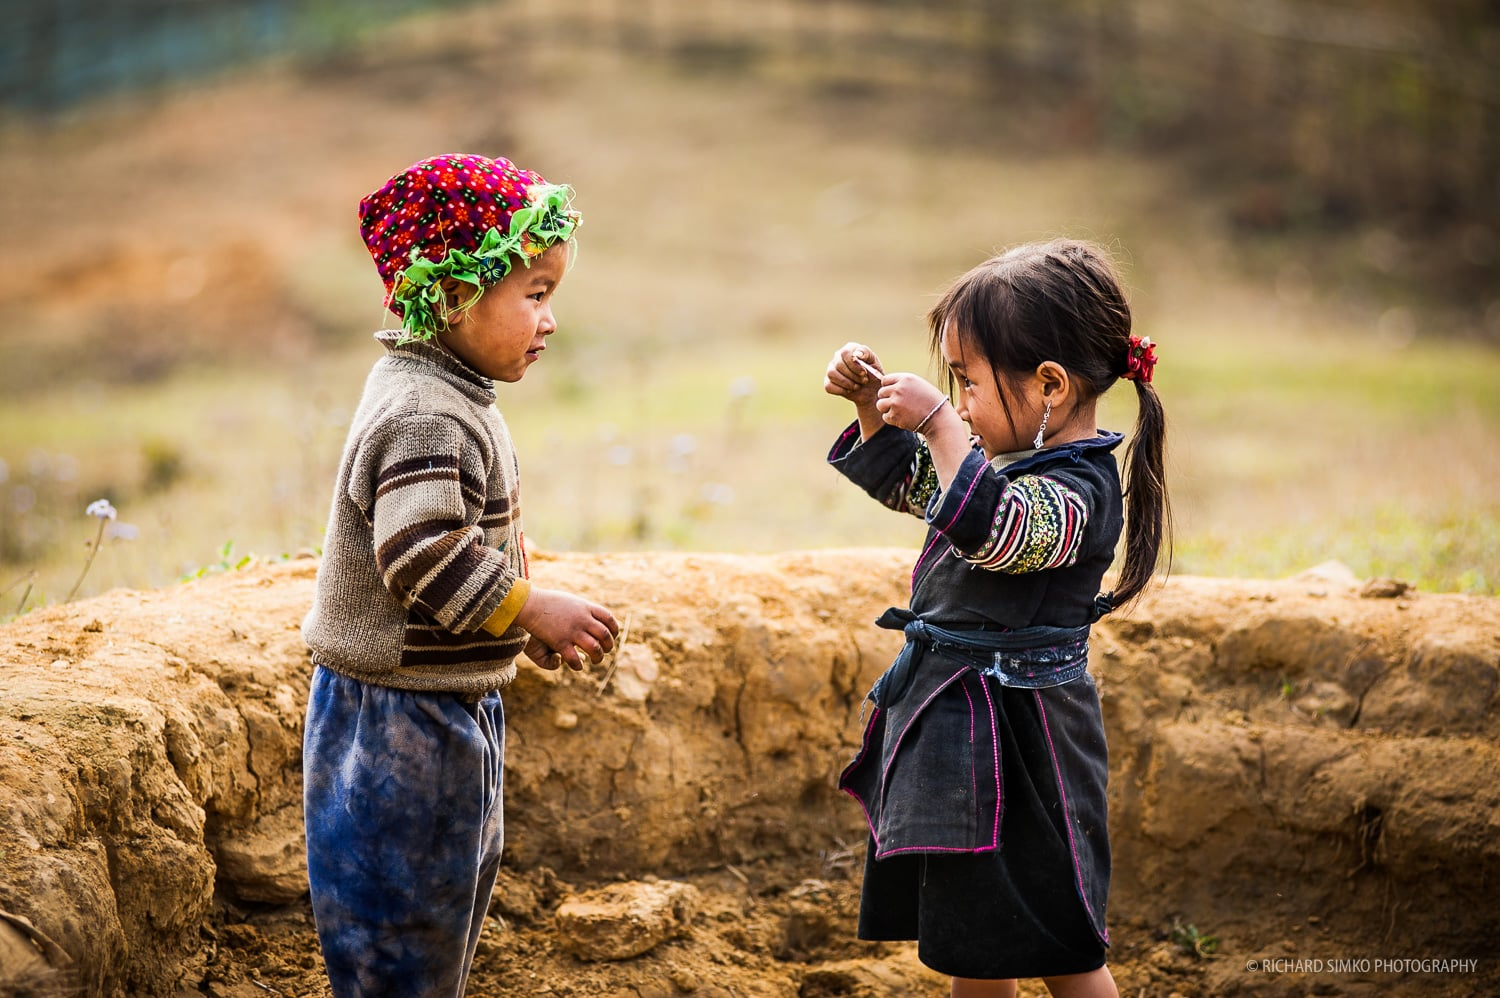 children-of-asia-008.jpg